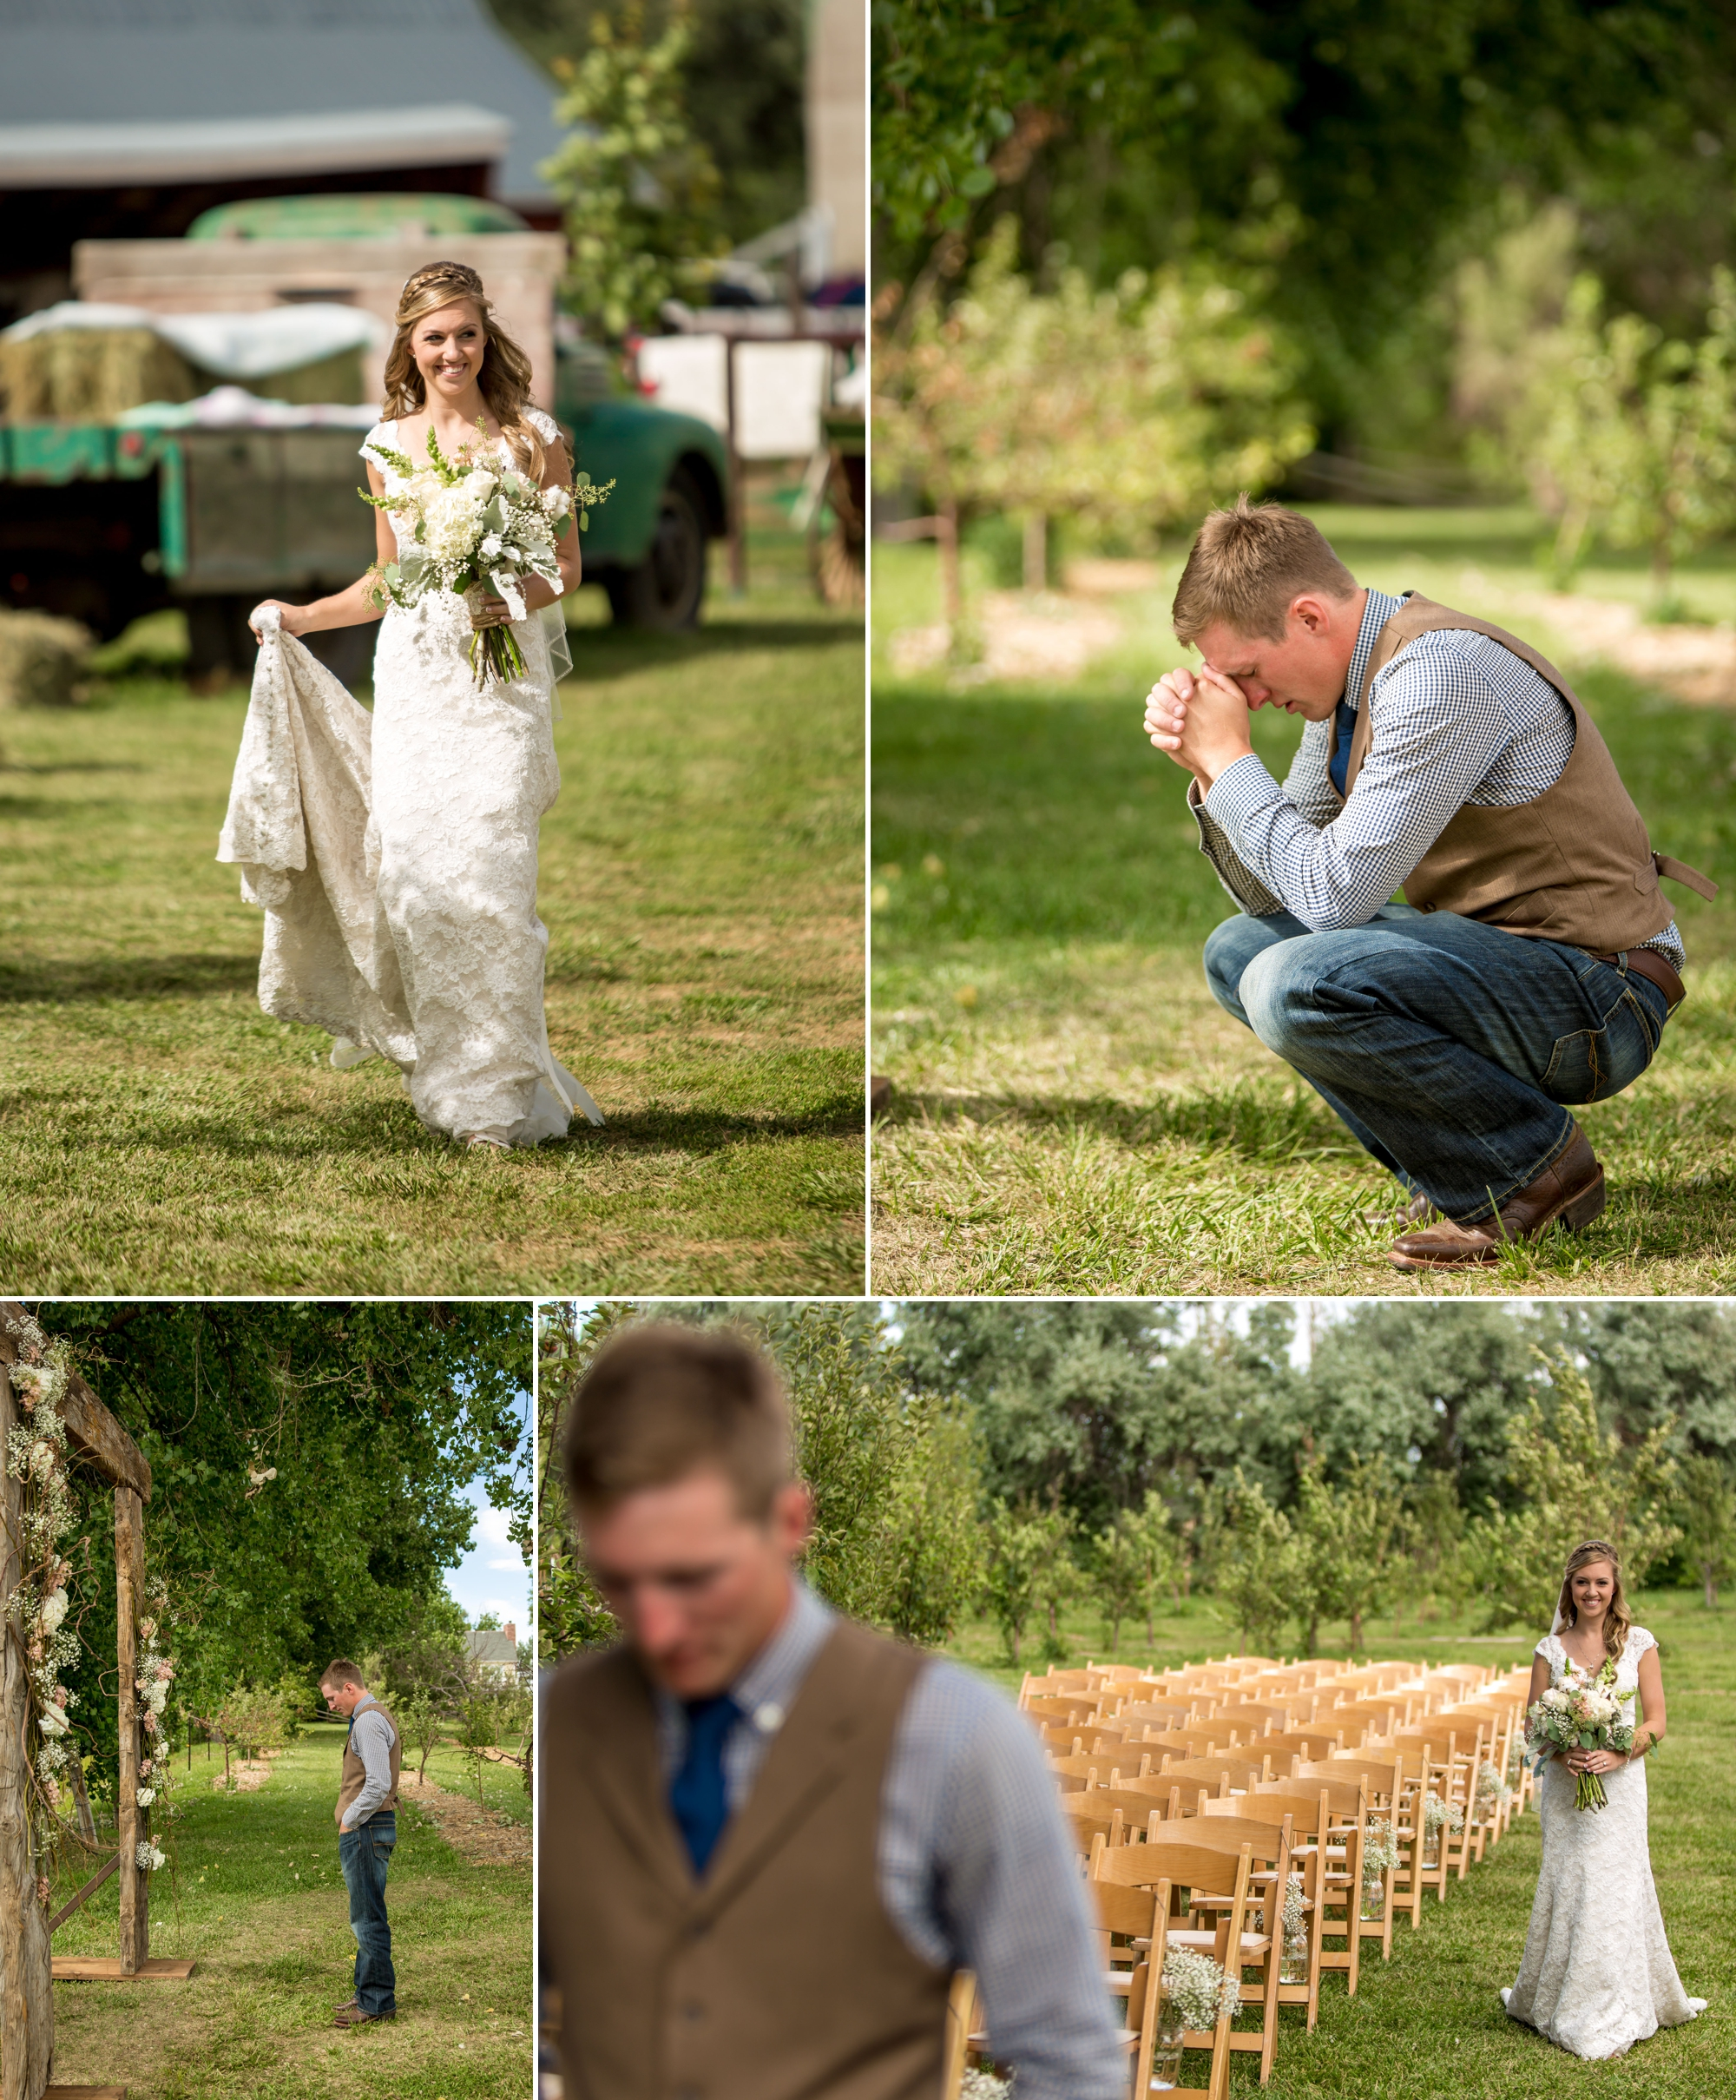 One of the most emotional first looks we've had. As Leslie was approaching the ceremony location, Andrew was knelt down praying and with each step she took, the anticipation grew.